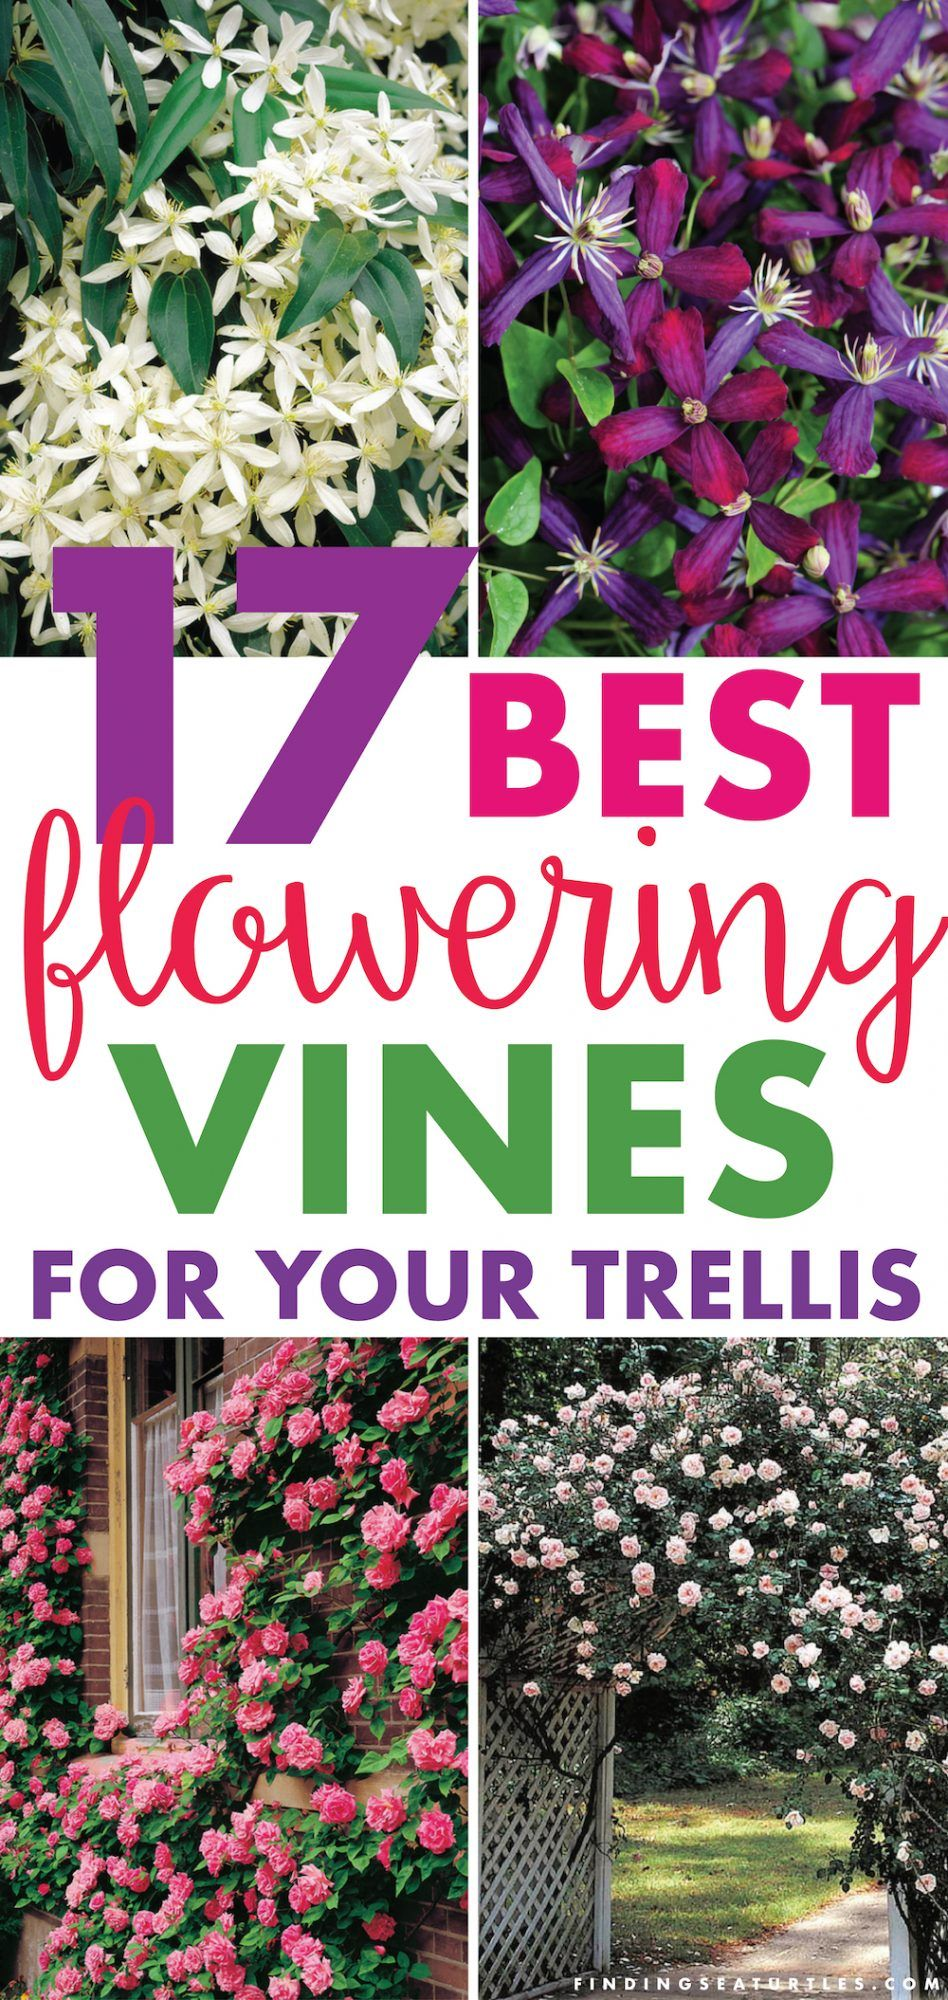 17 Vibrant Flowering Vines For Your Arbor Trellis Or Pergola